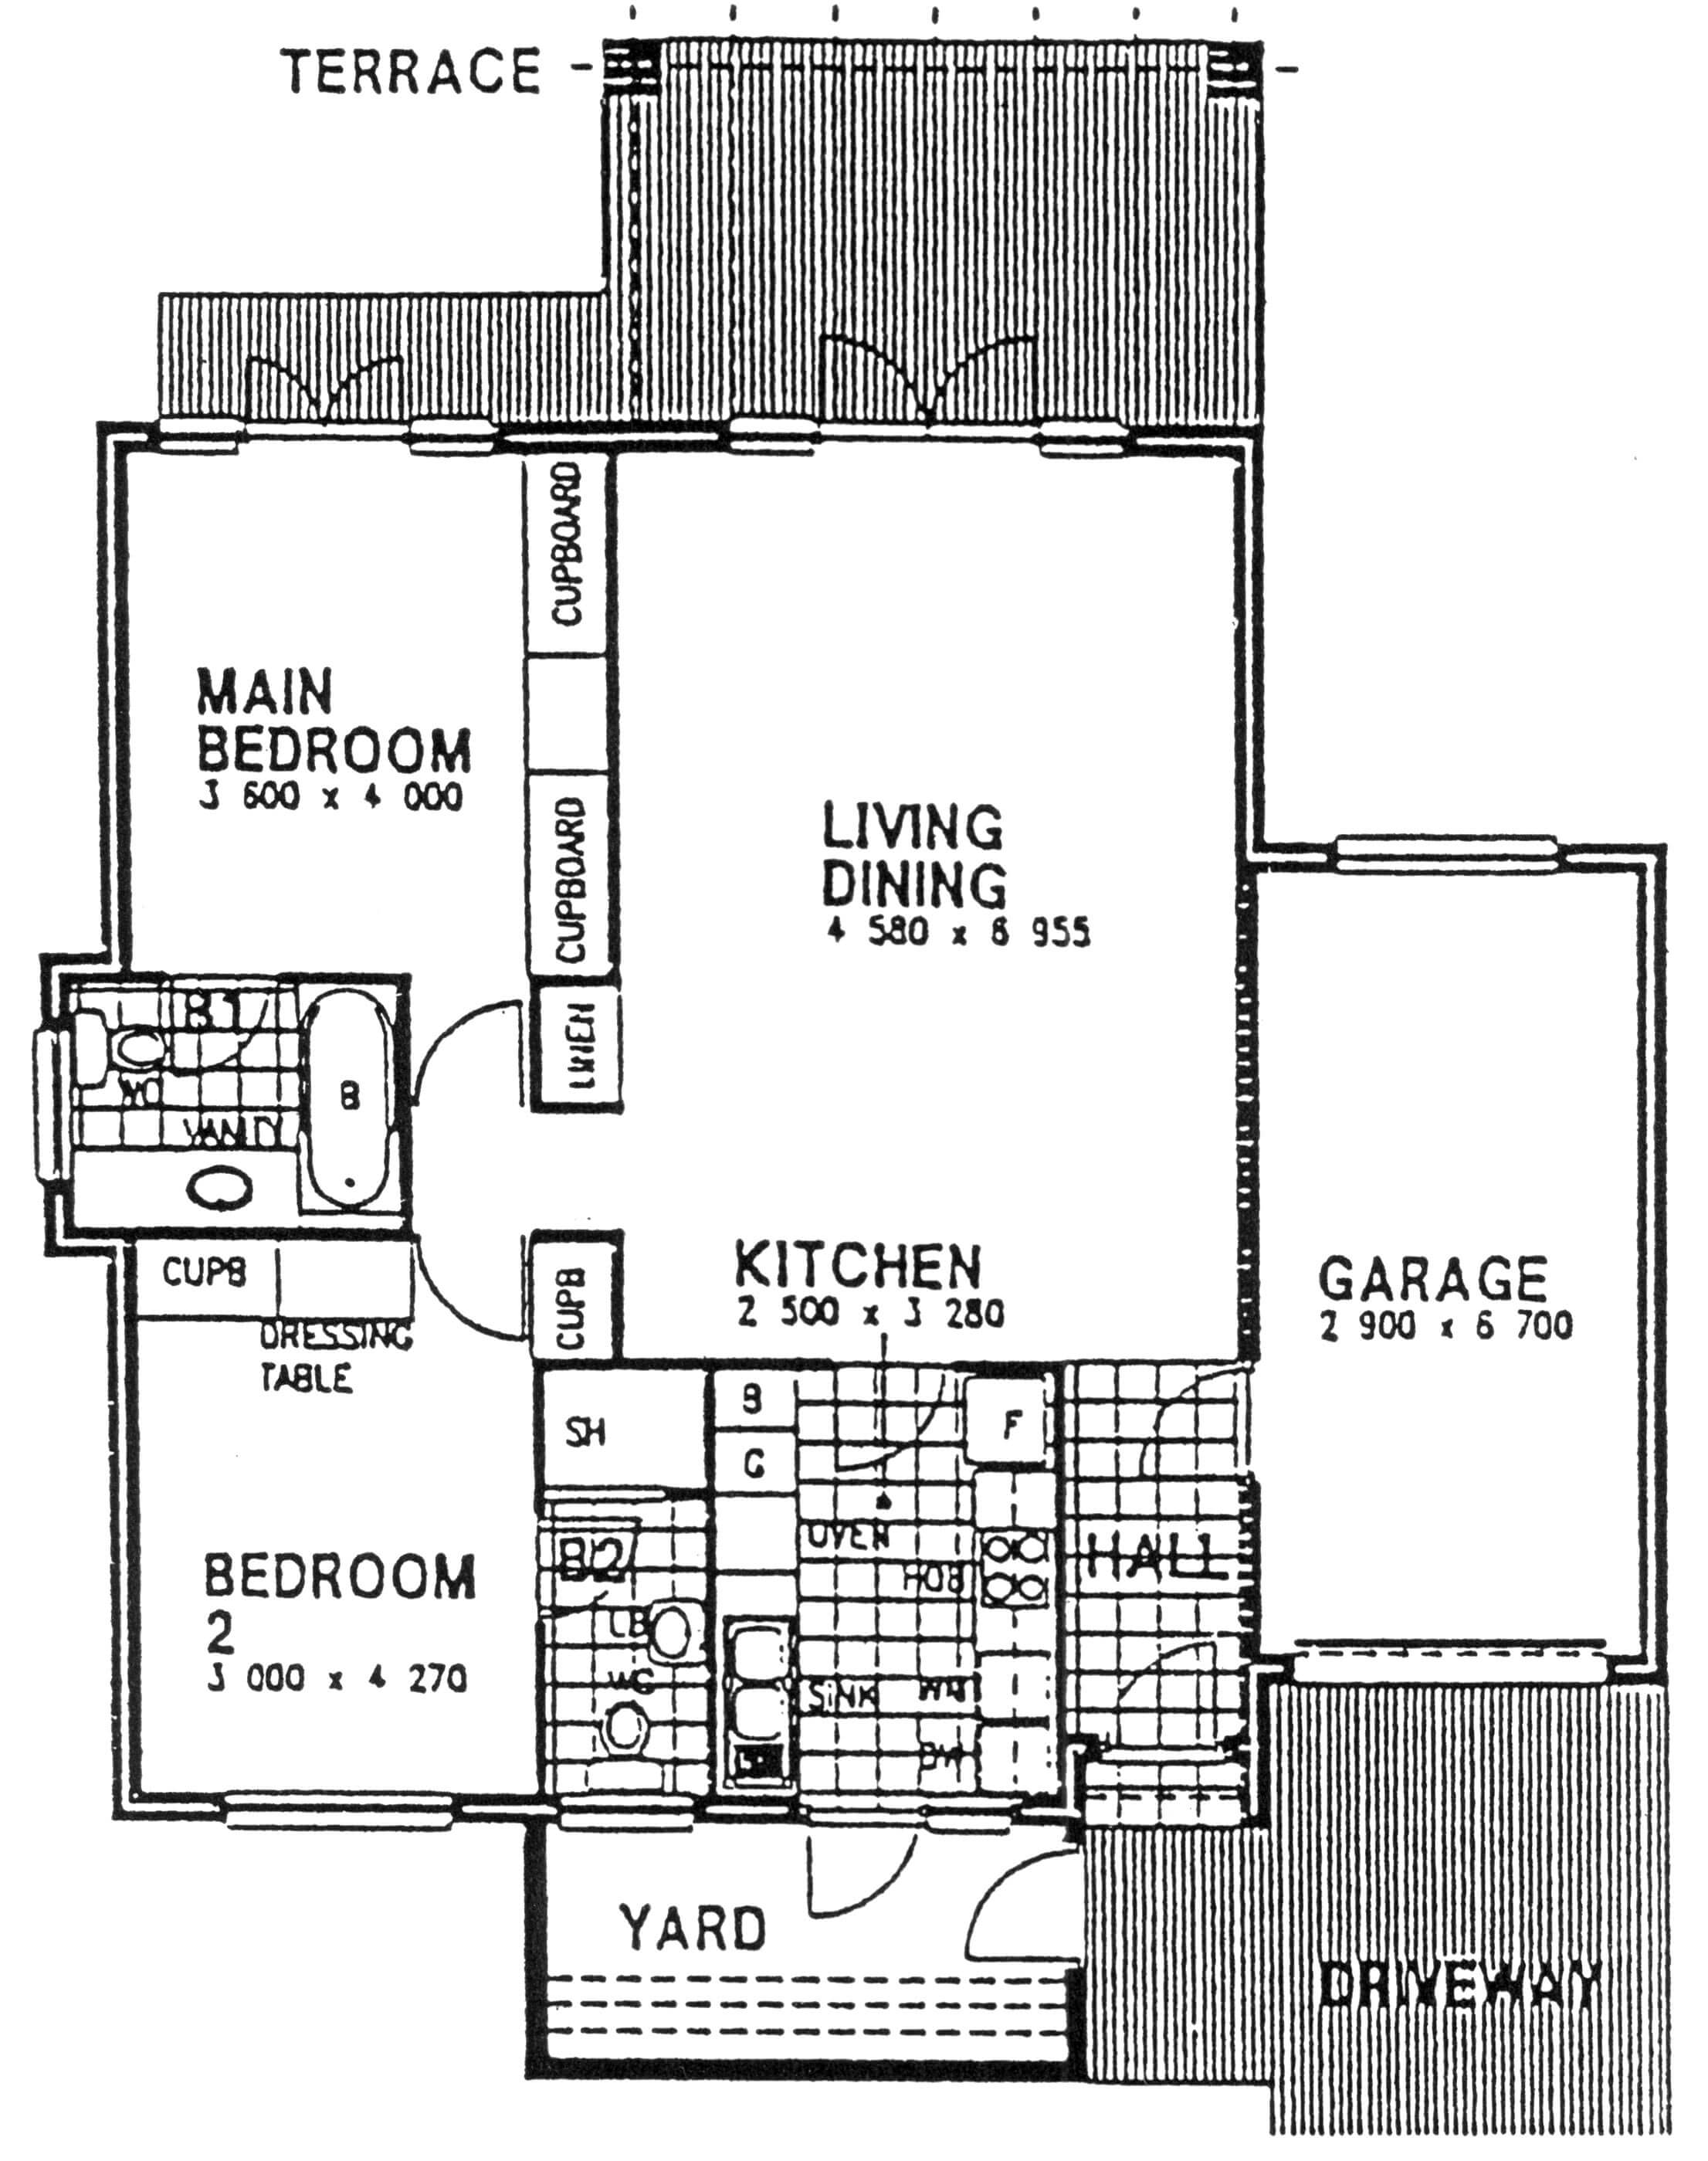 Floor Plan - Newlands 2 Floor Plan